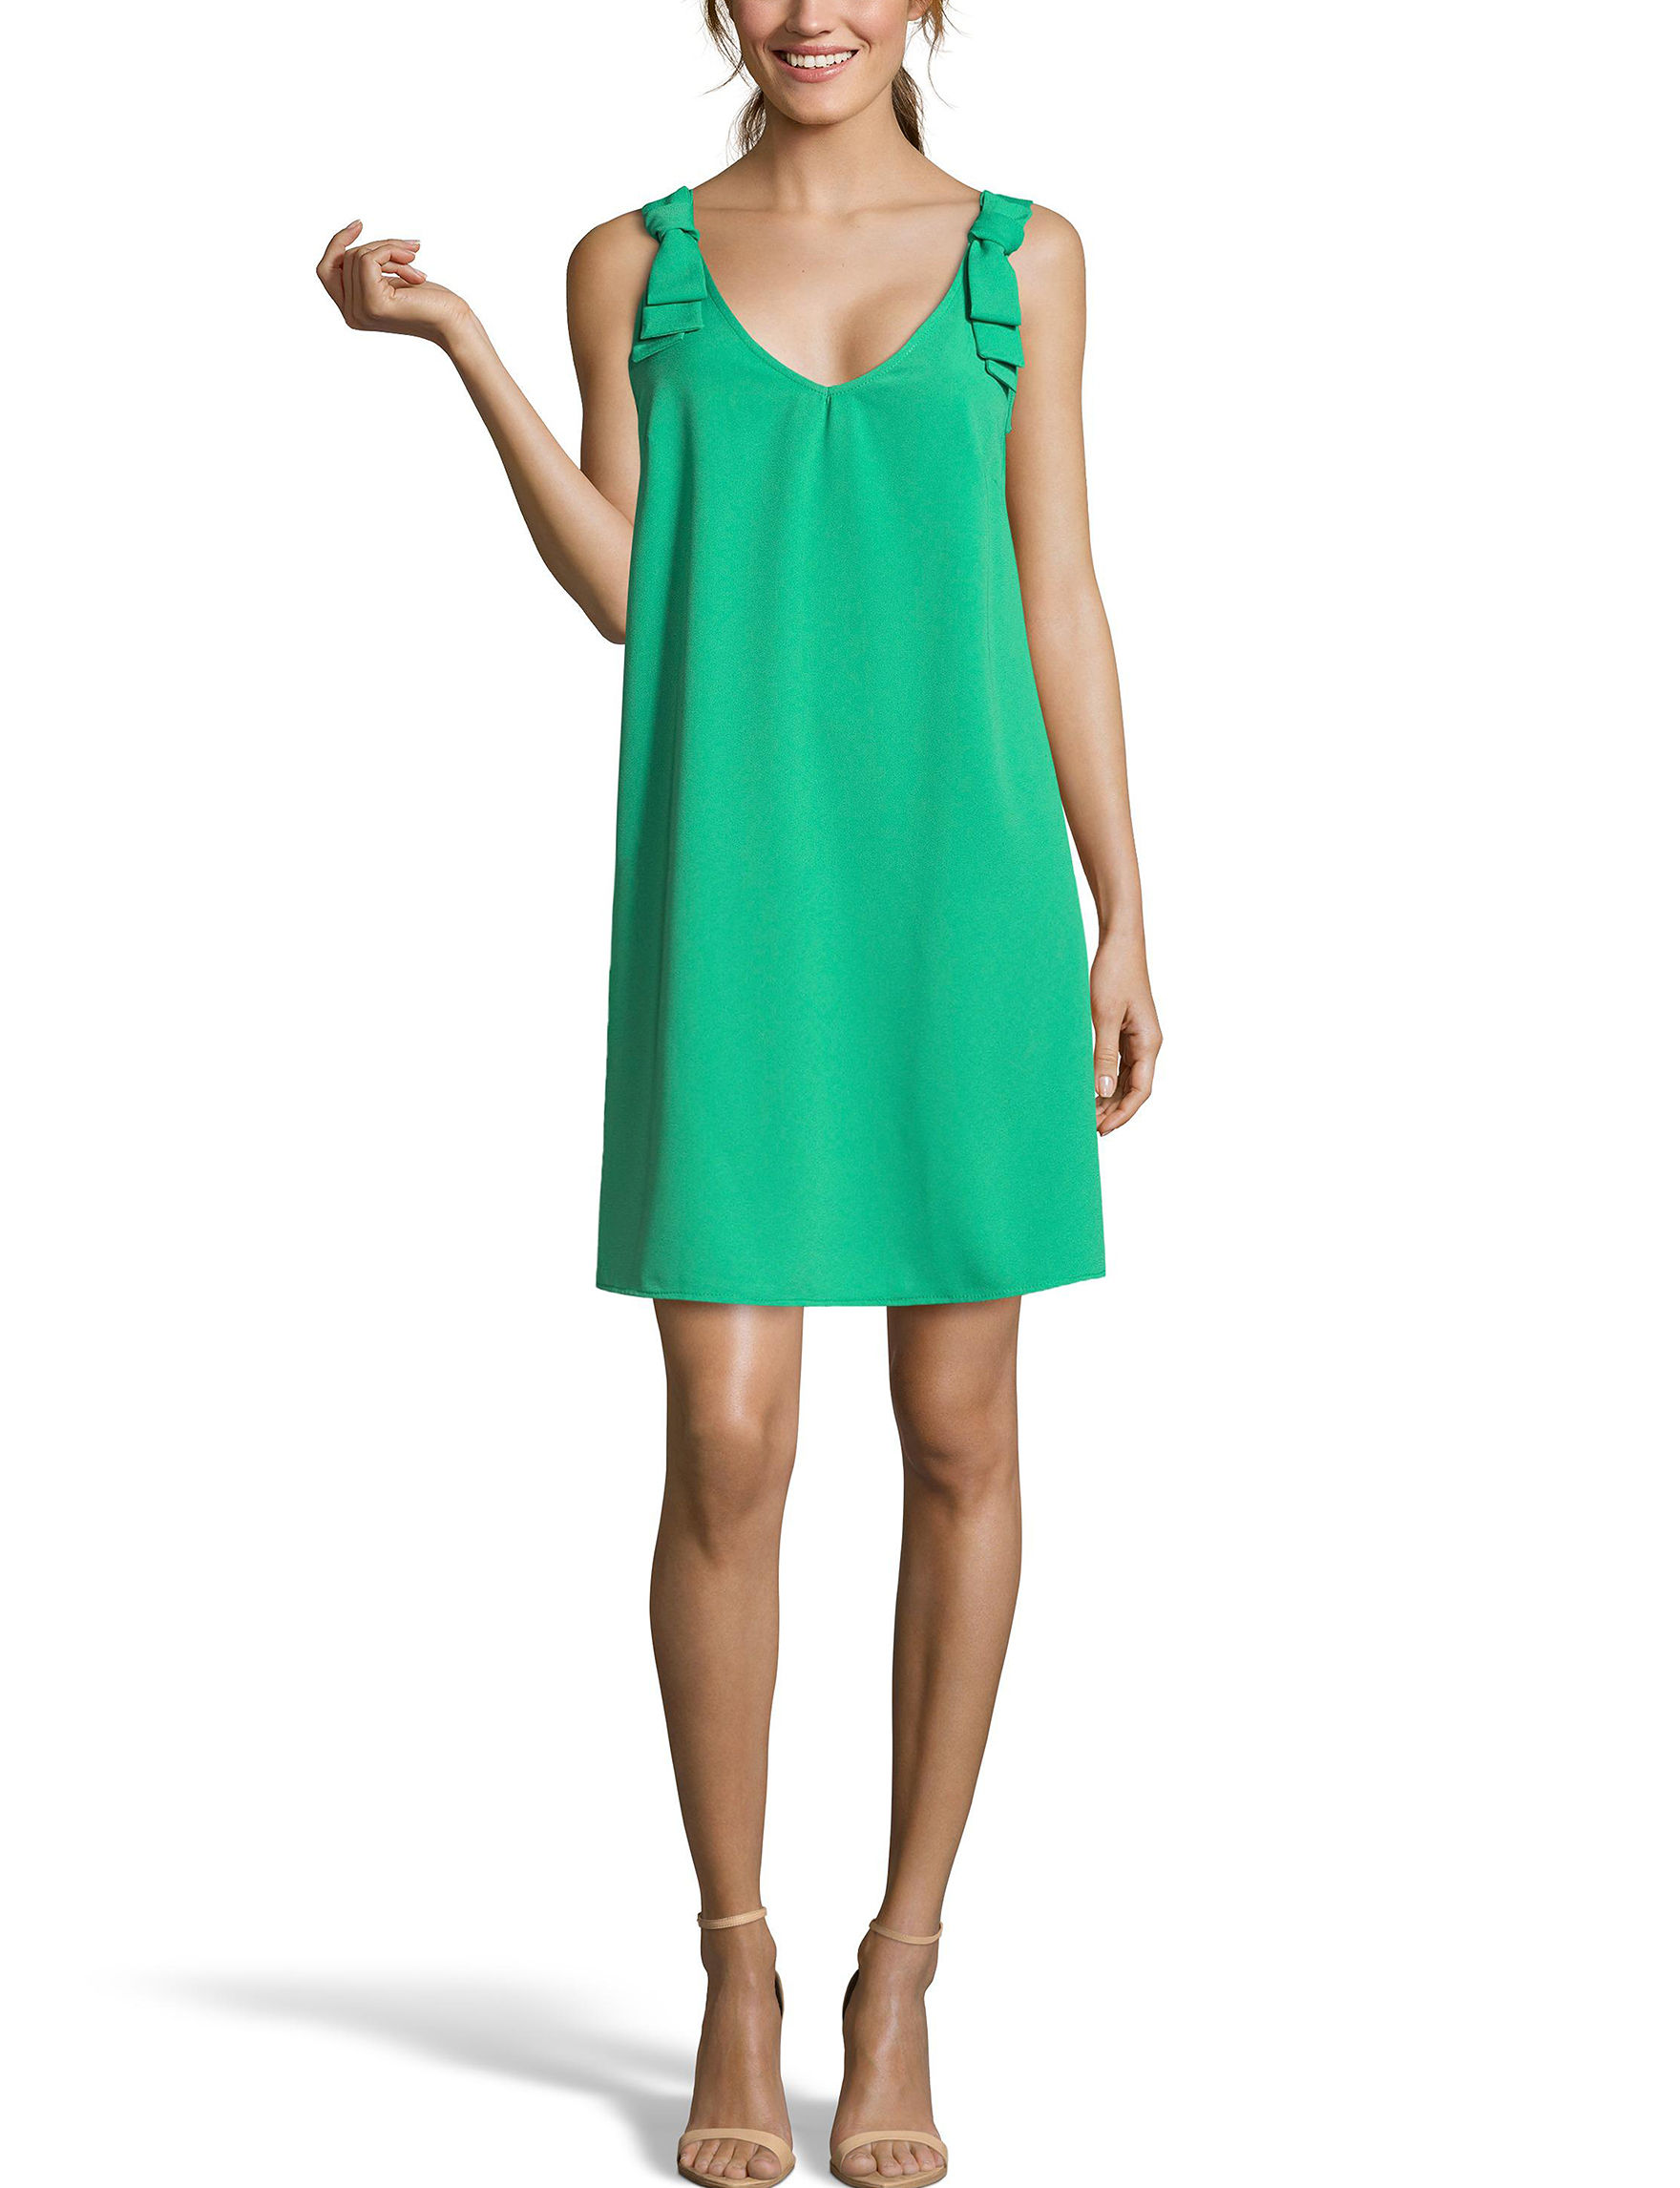 Nicole Miller Green Everyday & Casual Shift Dresses